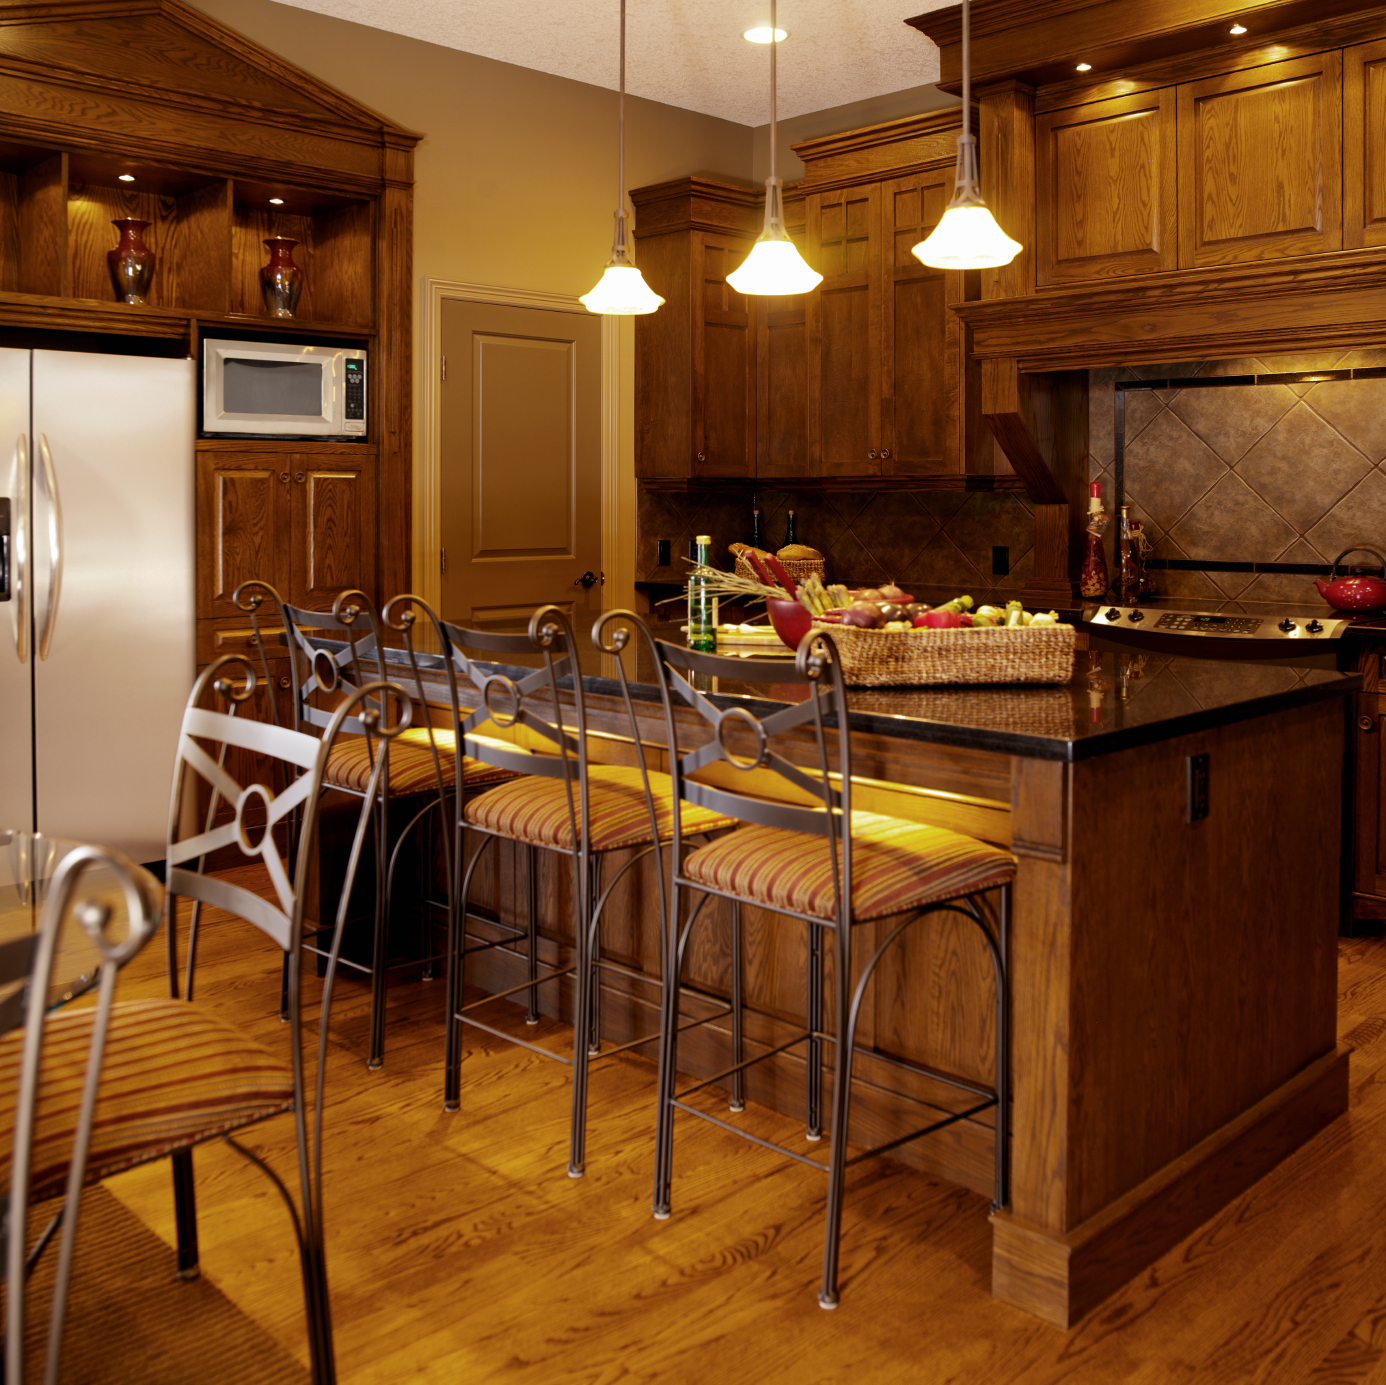 Cozy Kitchen Awash In Warm Natural Wood Tones Featuring Black